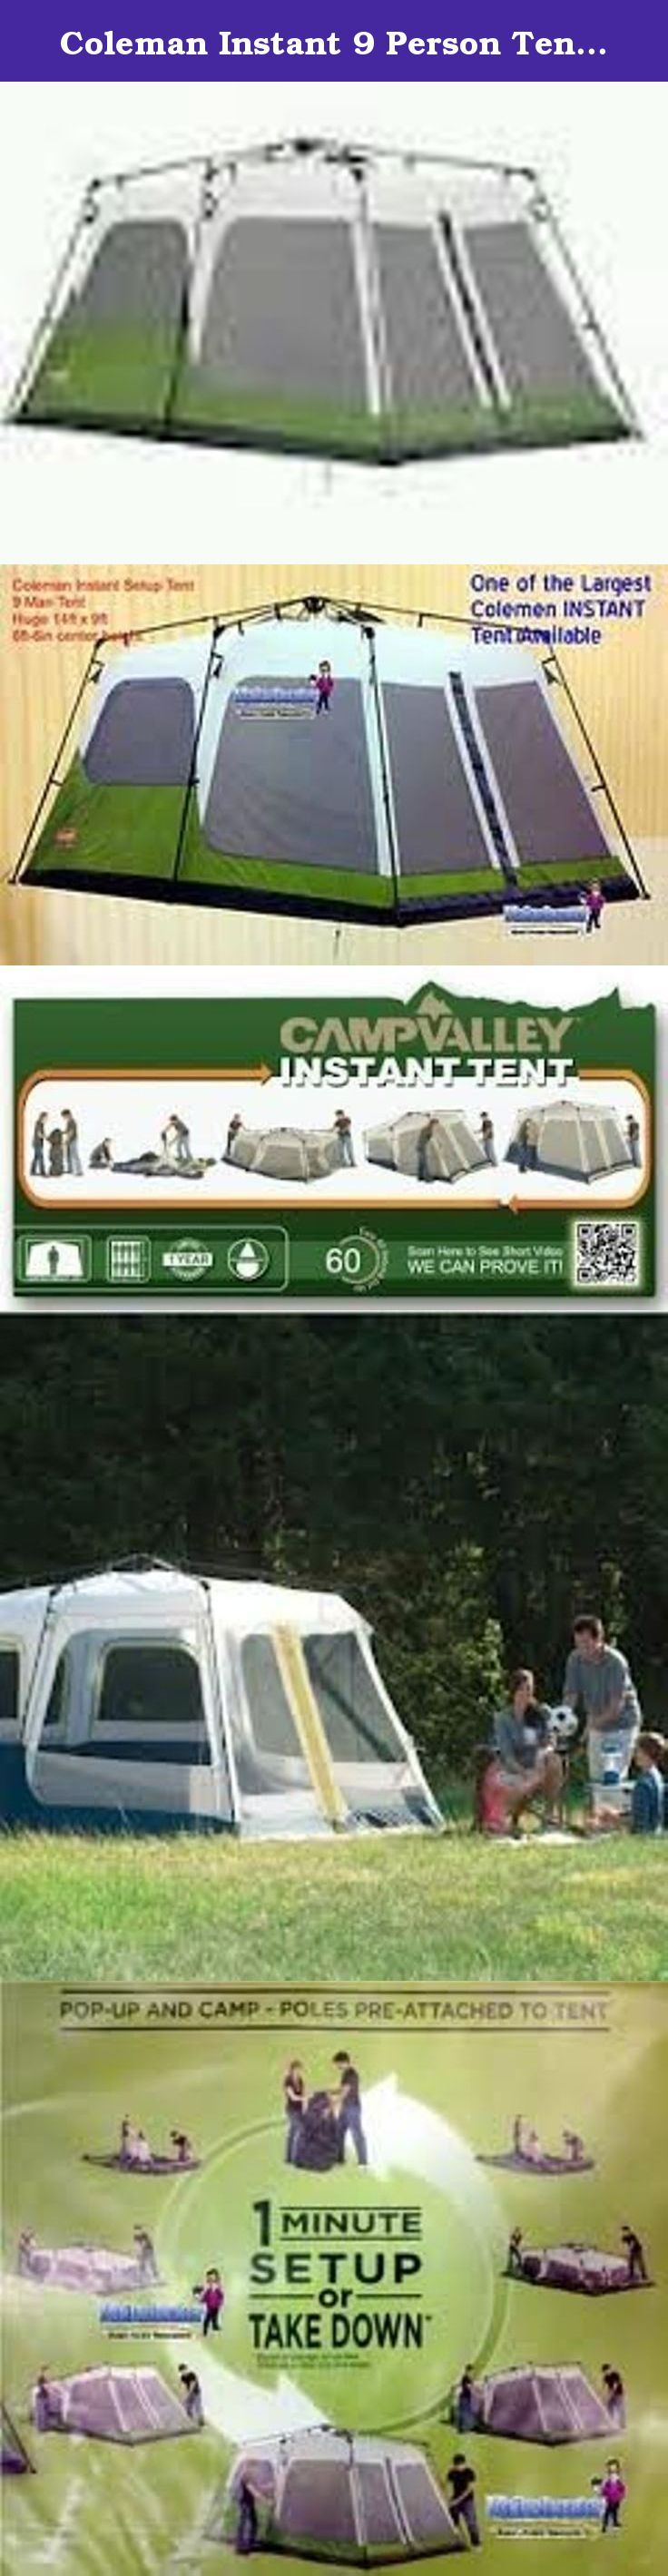 Coleman Instant 9 Person Tent (14ft X 9ft). Set up camp with the Coleman 9-person instant tent. It offers ample space to accommodate up to 9 people at a time. You can place 2 queen-size air beds in this tent and still have enough space to comfortably stand and walk around inside. This 2-room family tent has 6 mesh windows and a D-style door. Its fully-taped WeatherTec system prevents water seepage, even during harsh weather conditions. This outdoor camping tent comes with ground stakes…